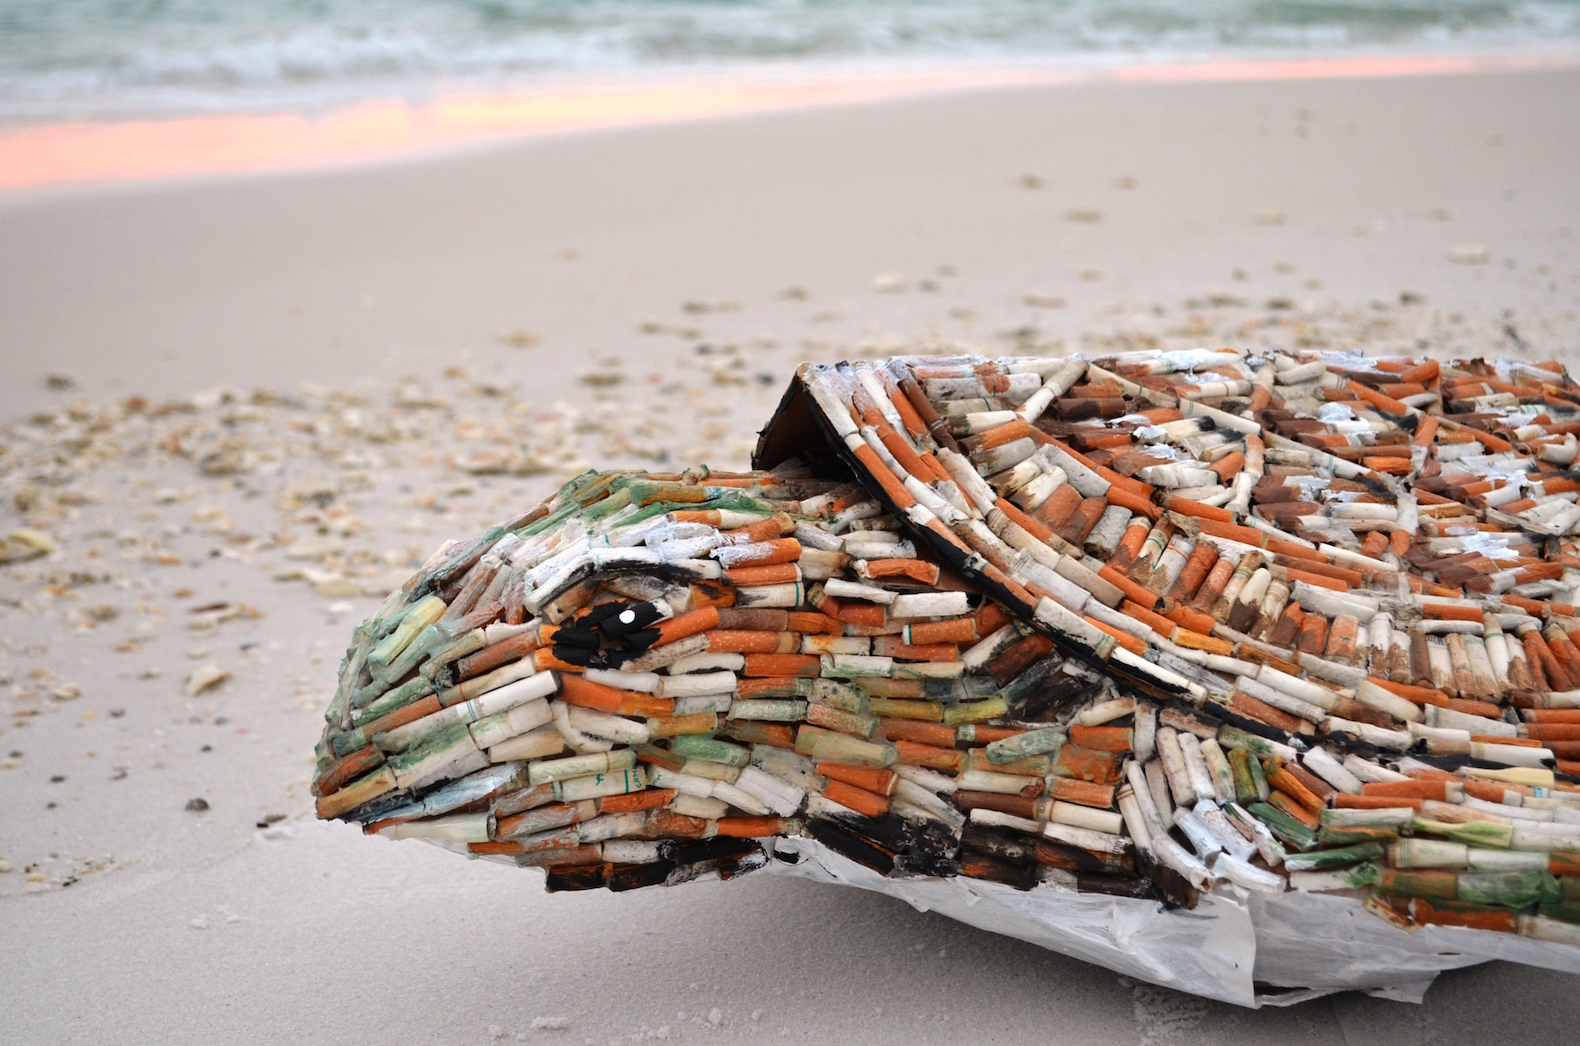 Meet Cig, the sea turtle made of over 1,000 cigarette butts strewn on a Florida beach